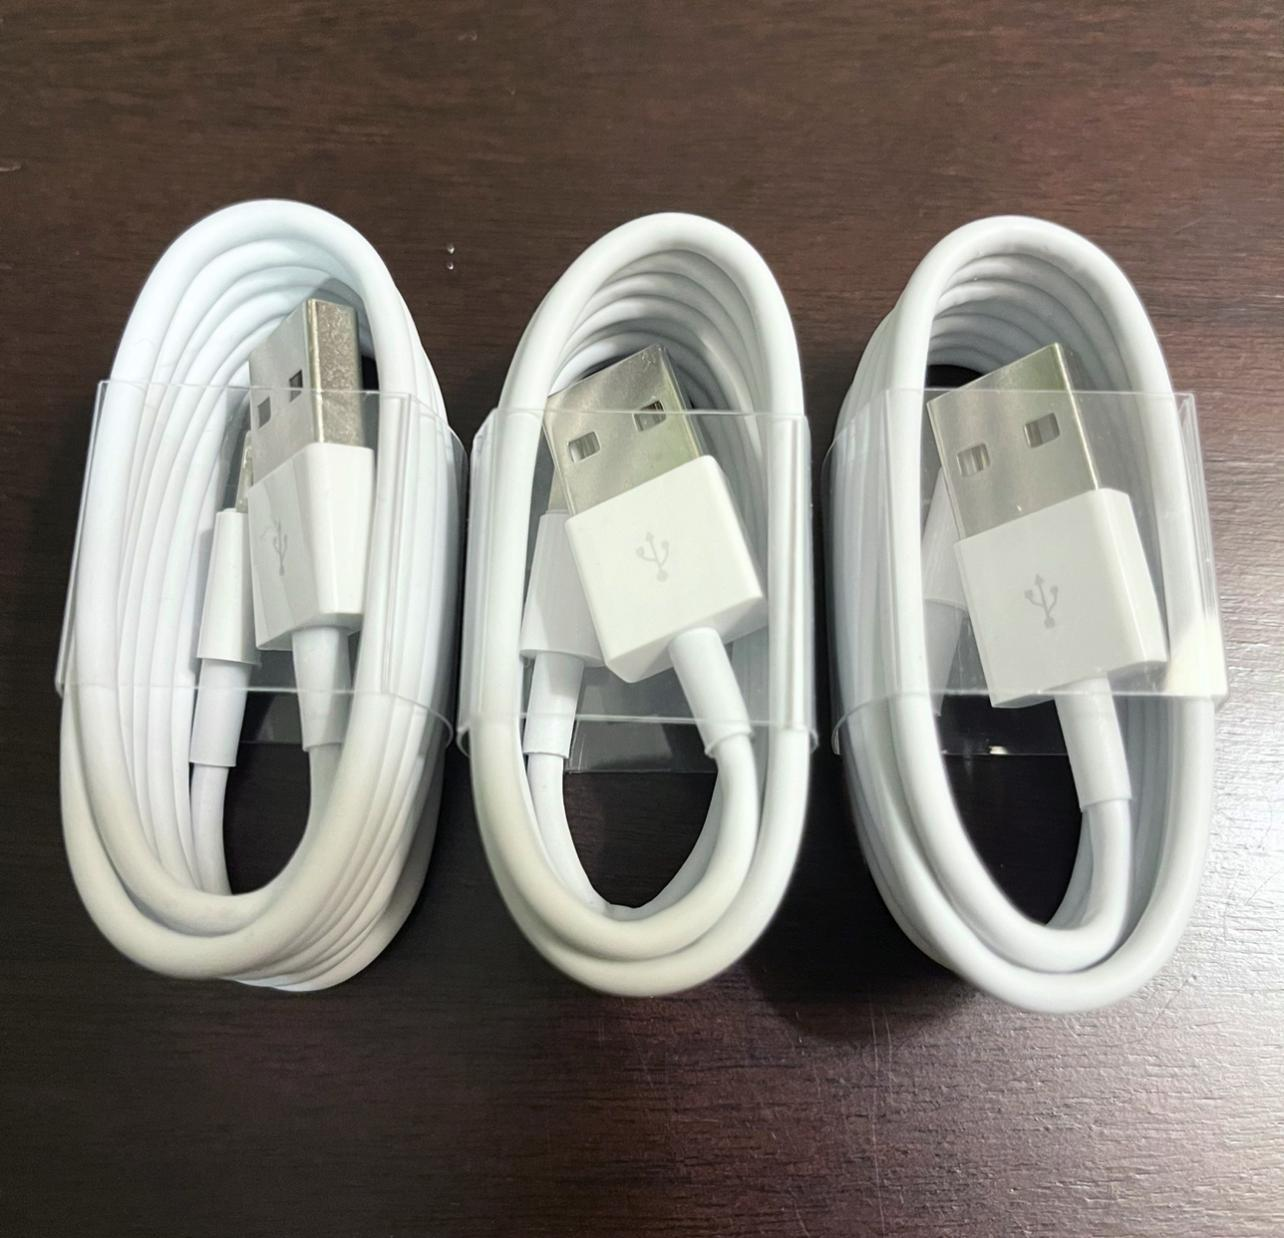 3x oem original fast charger cable charging